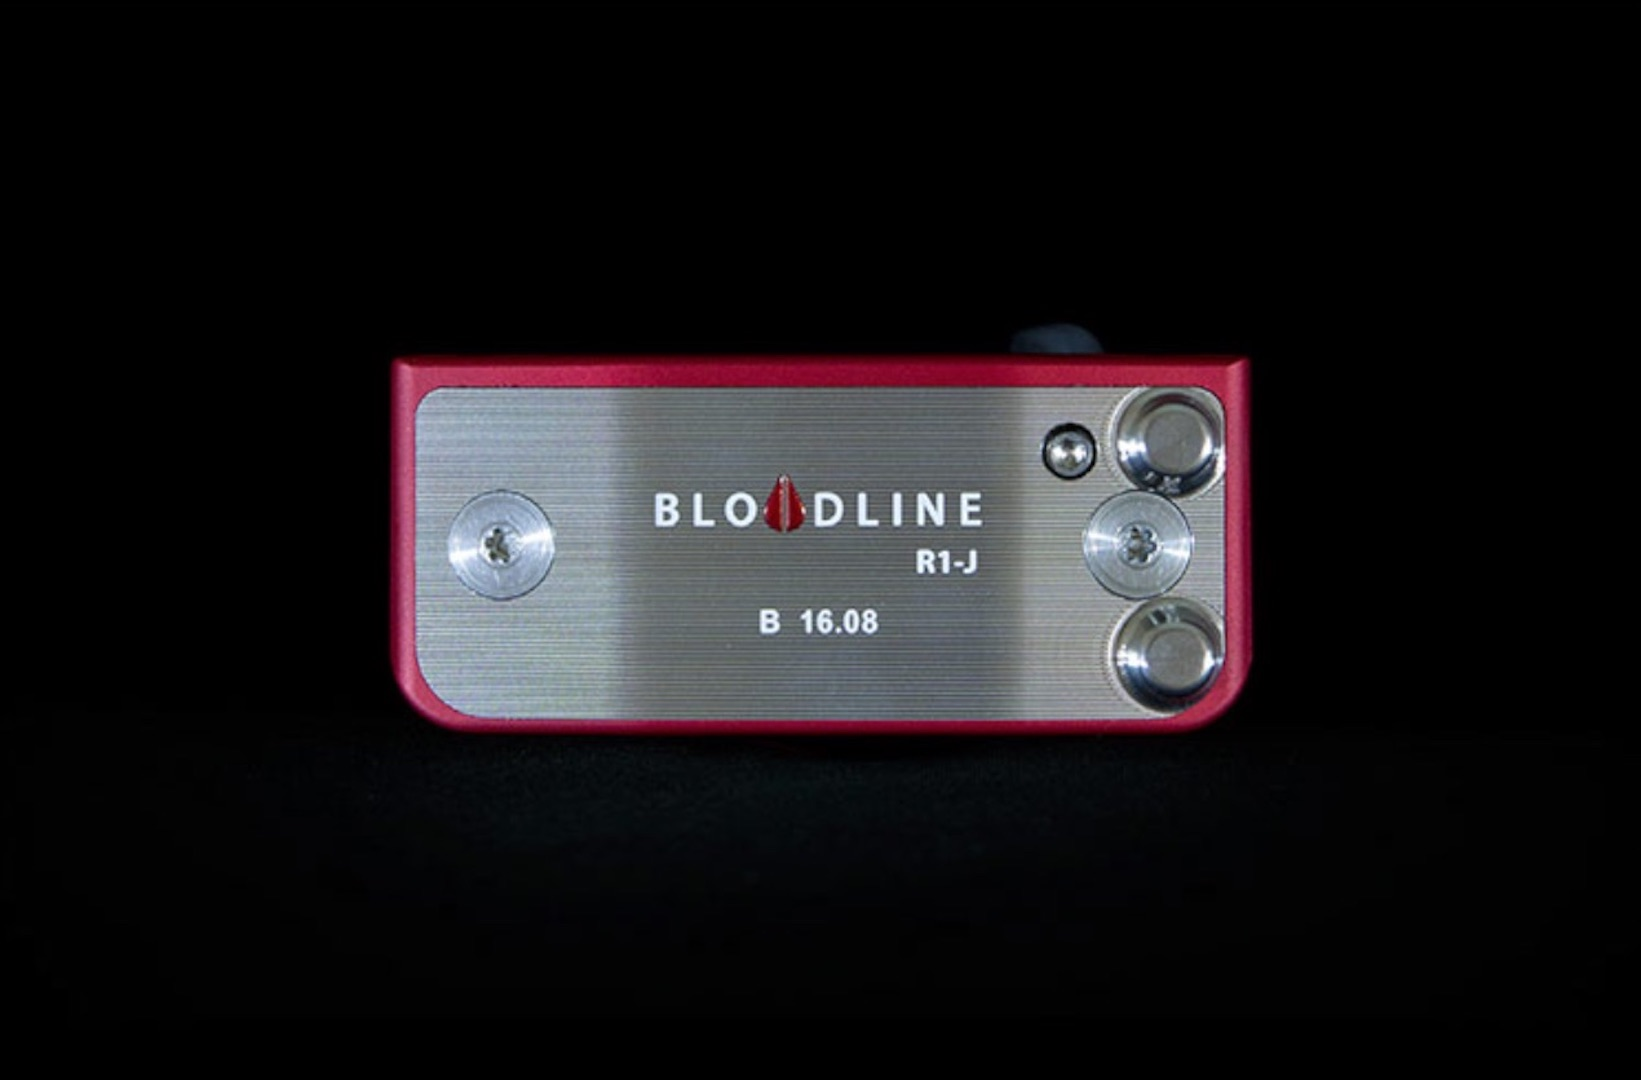 Bloodline intro self-standing putter